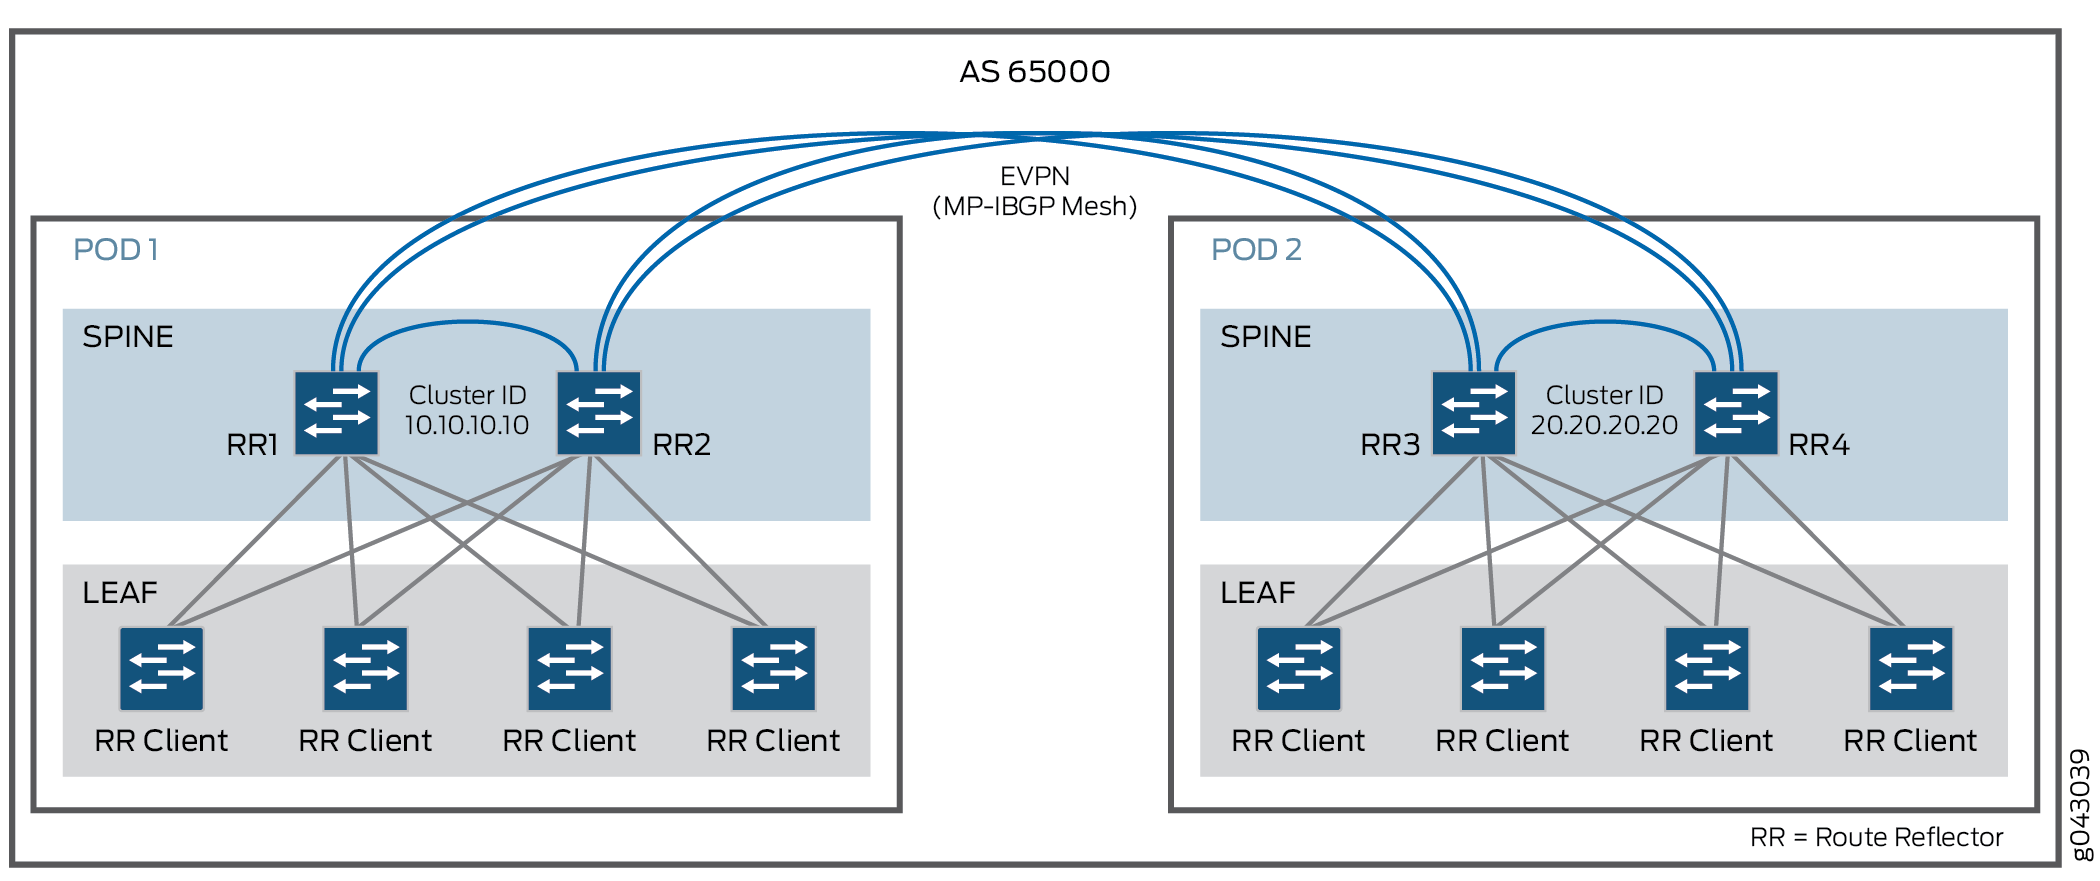 Understanding the IaaS: EVPN and VXLAN Solution - TechLibrary